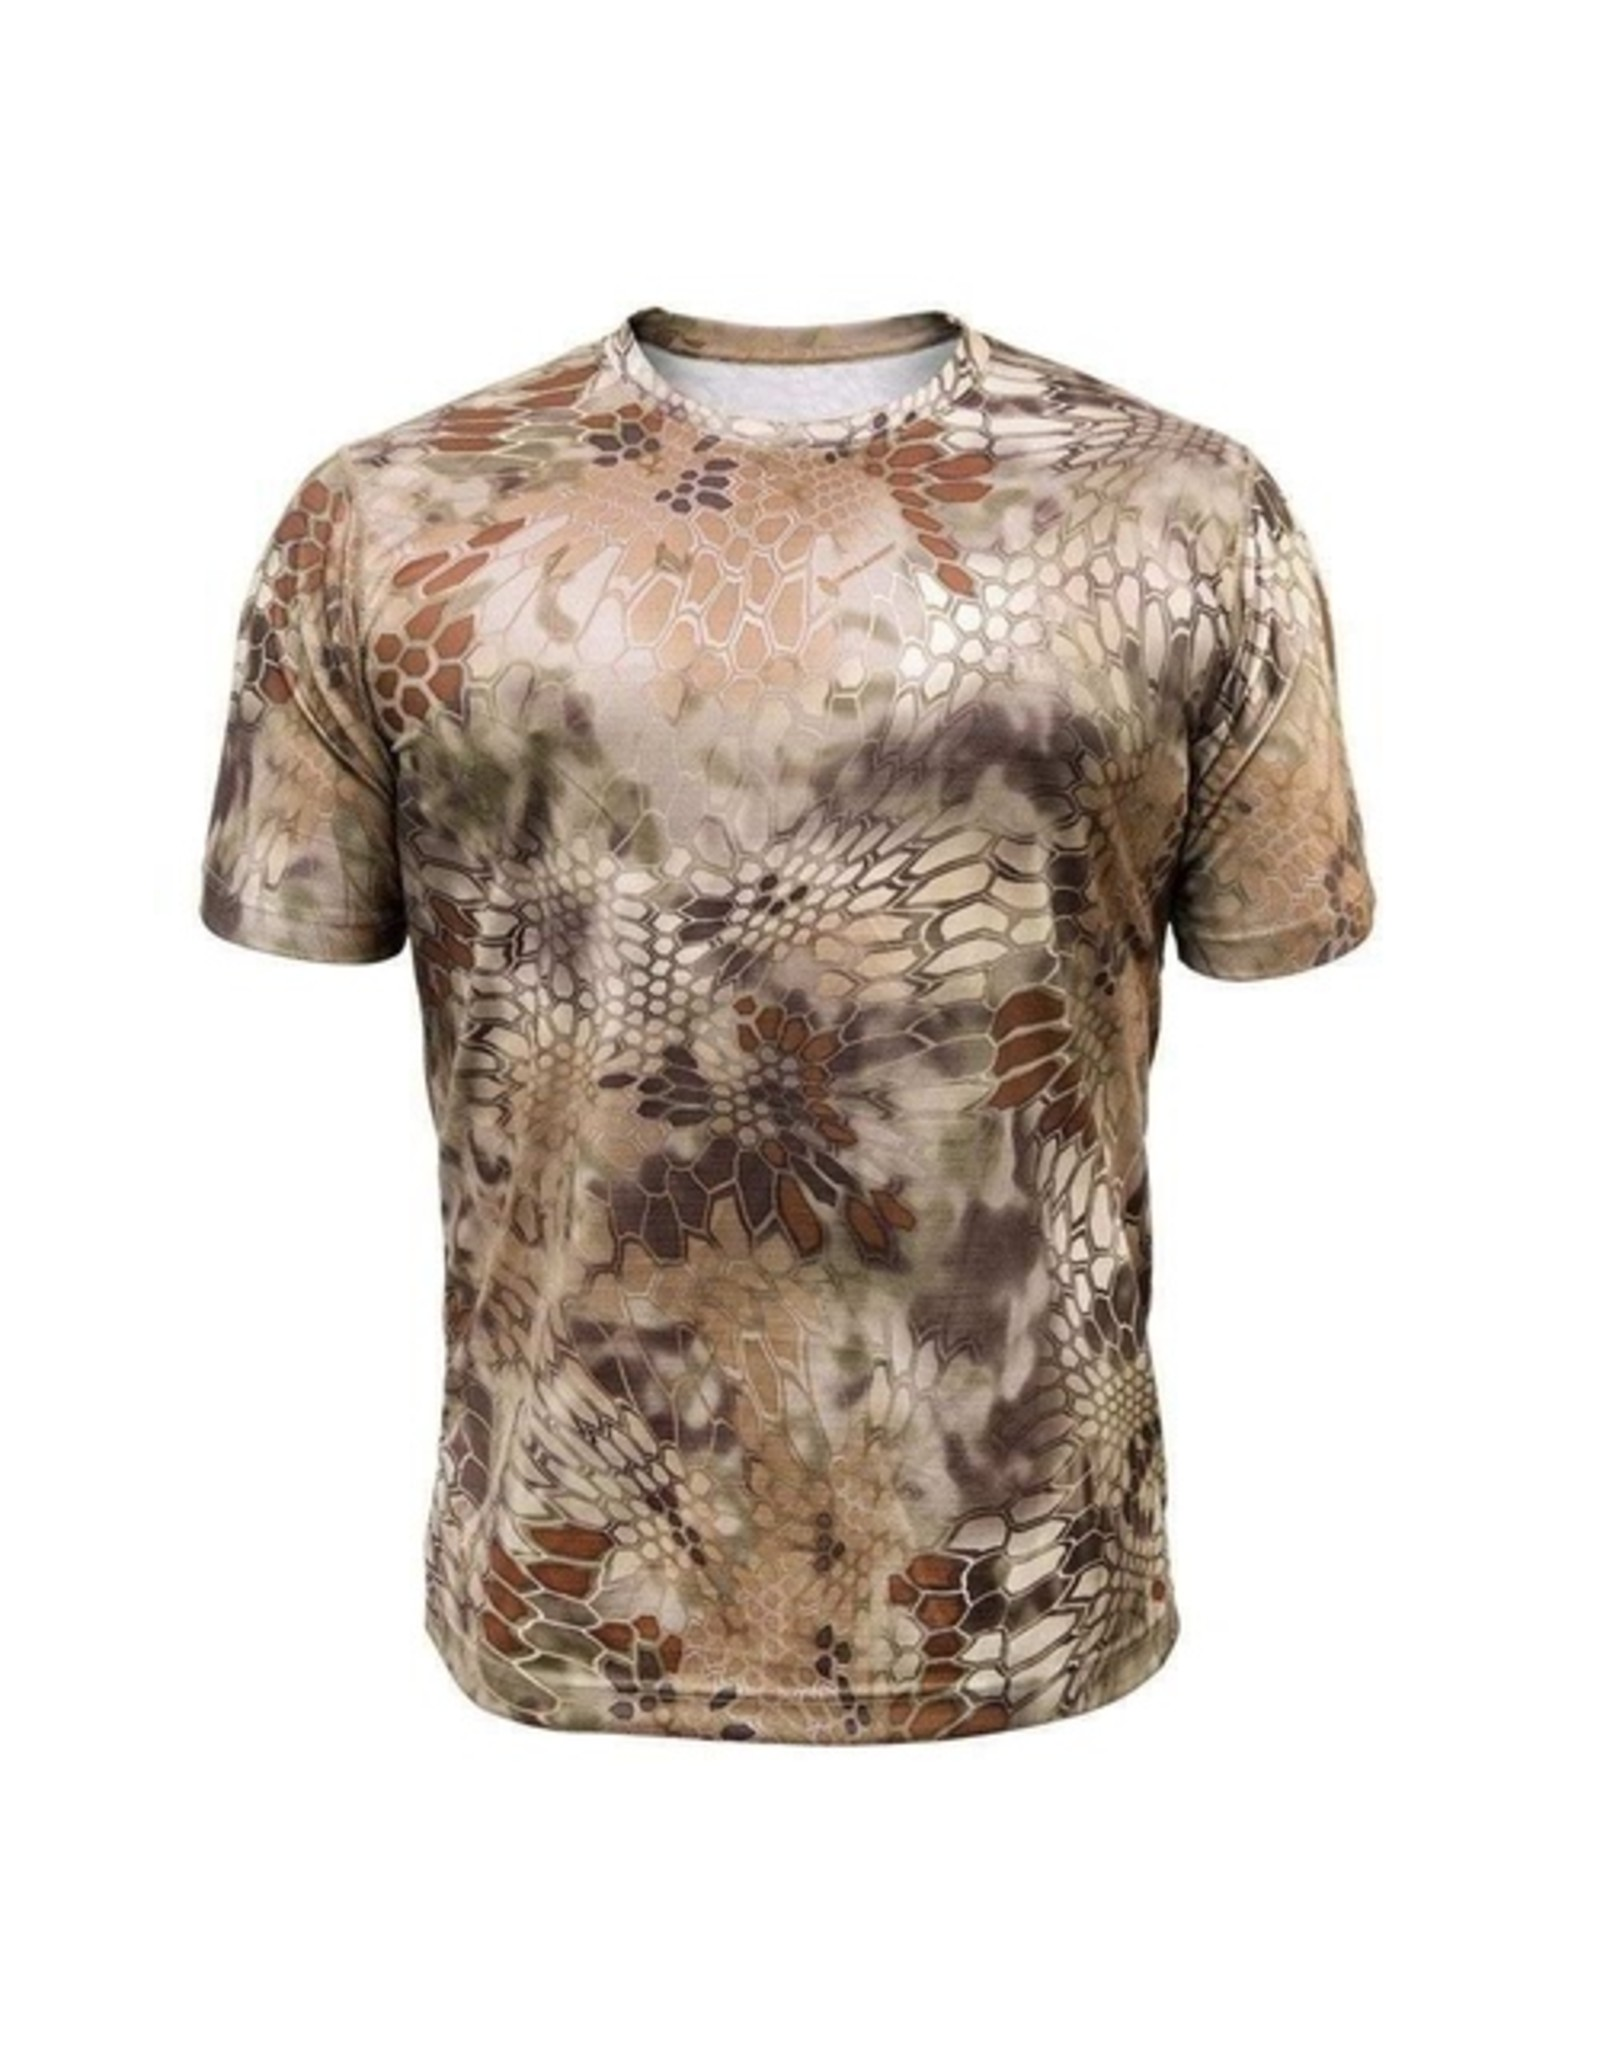 KRYPTEK HYPERION SHORT-SLEEVE CREW TOP